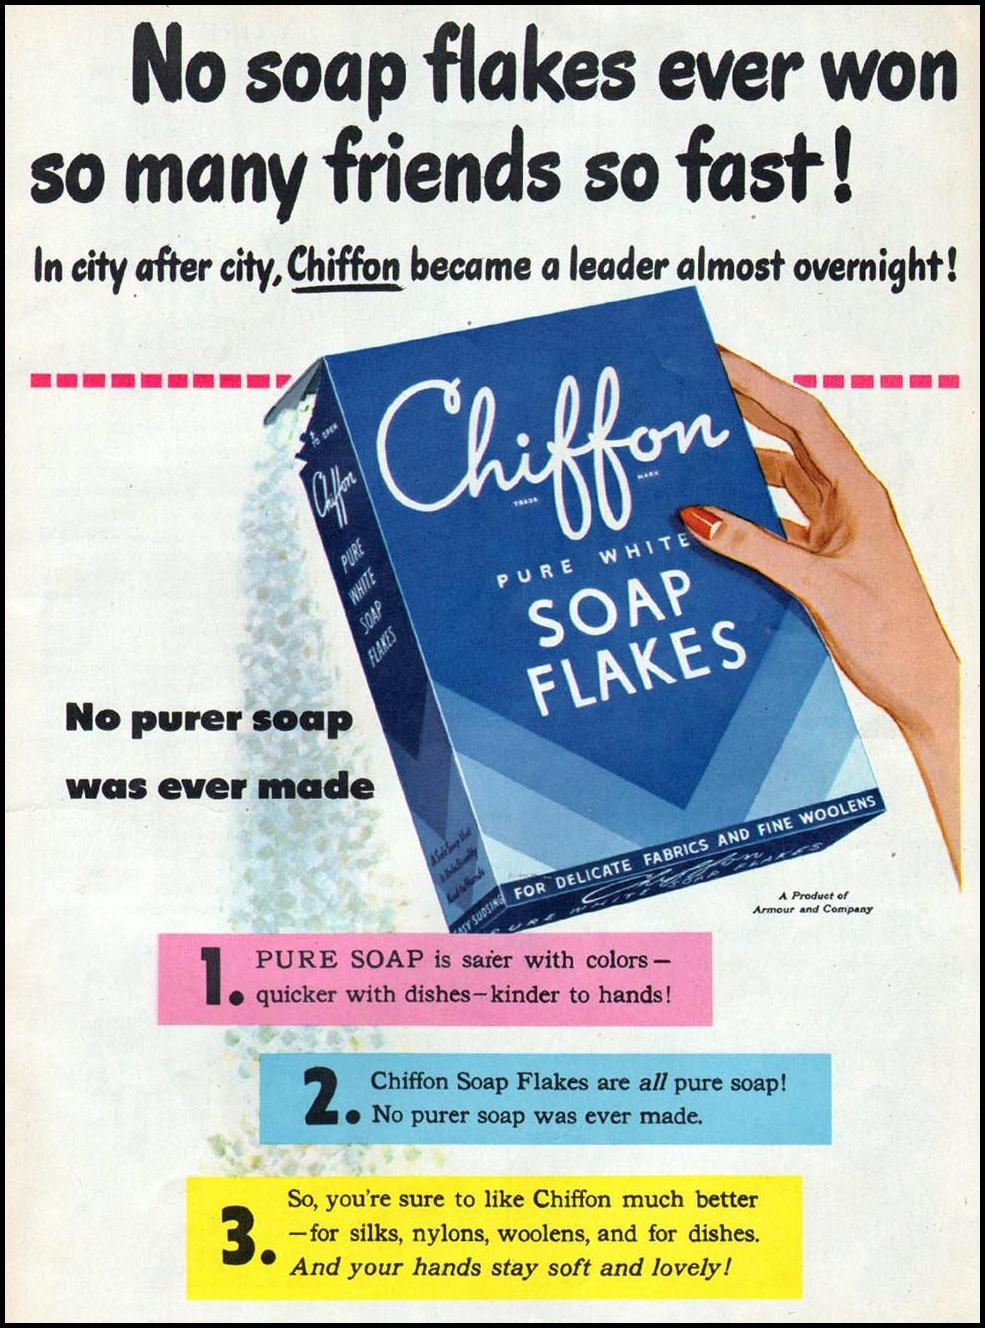 CHIFFON SOAP FLAKES